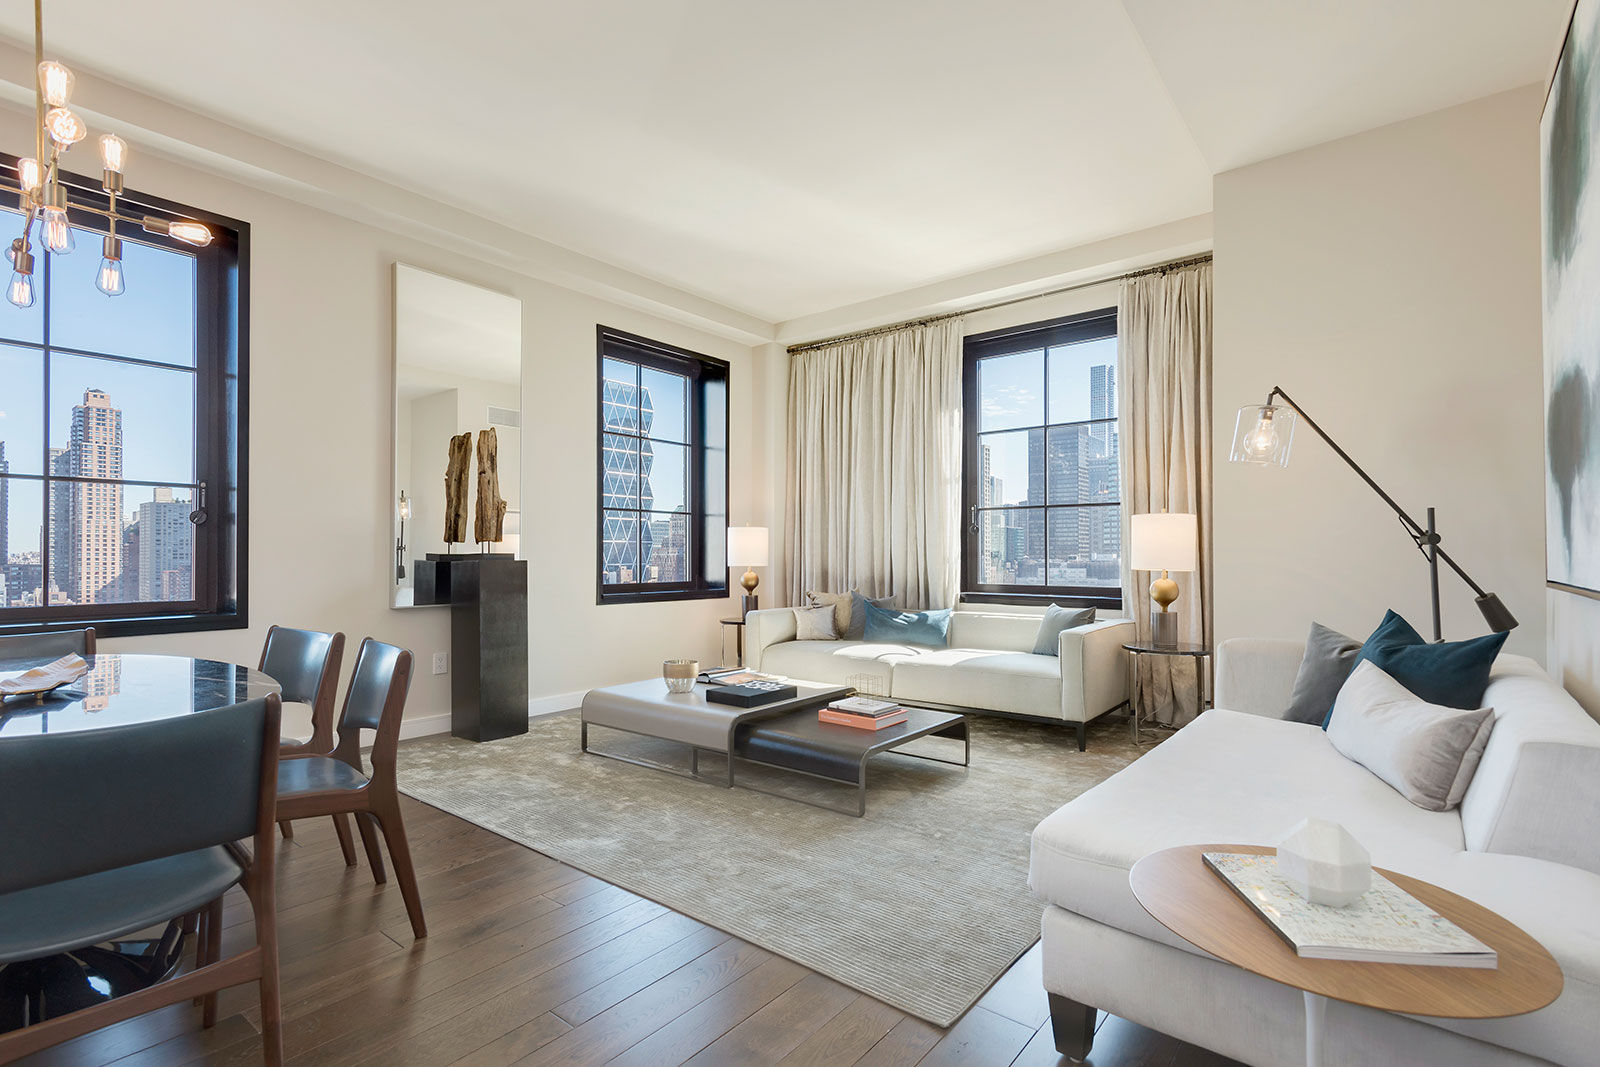 Hell s kitchen luxury penthouses in nyc stella tower for Hell s kitchen luxury apartments